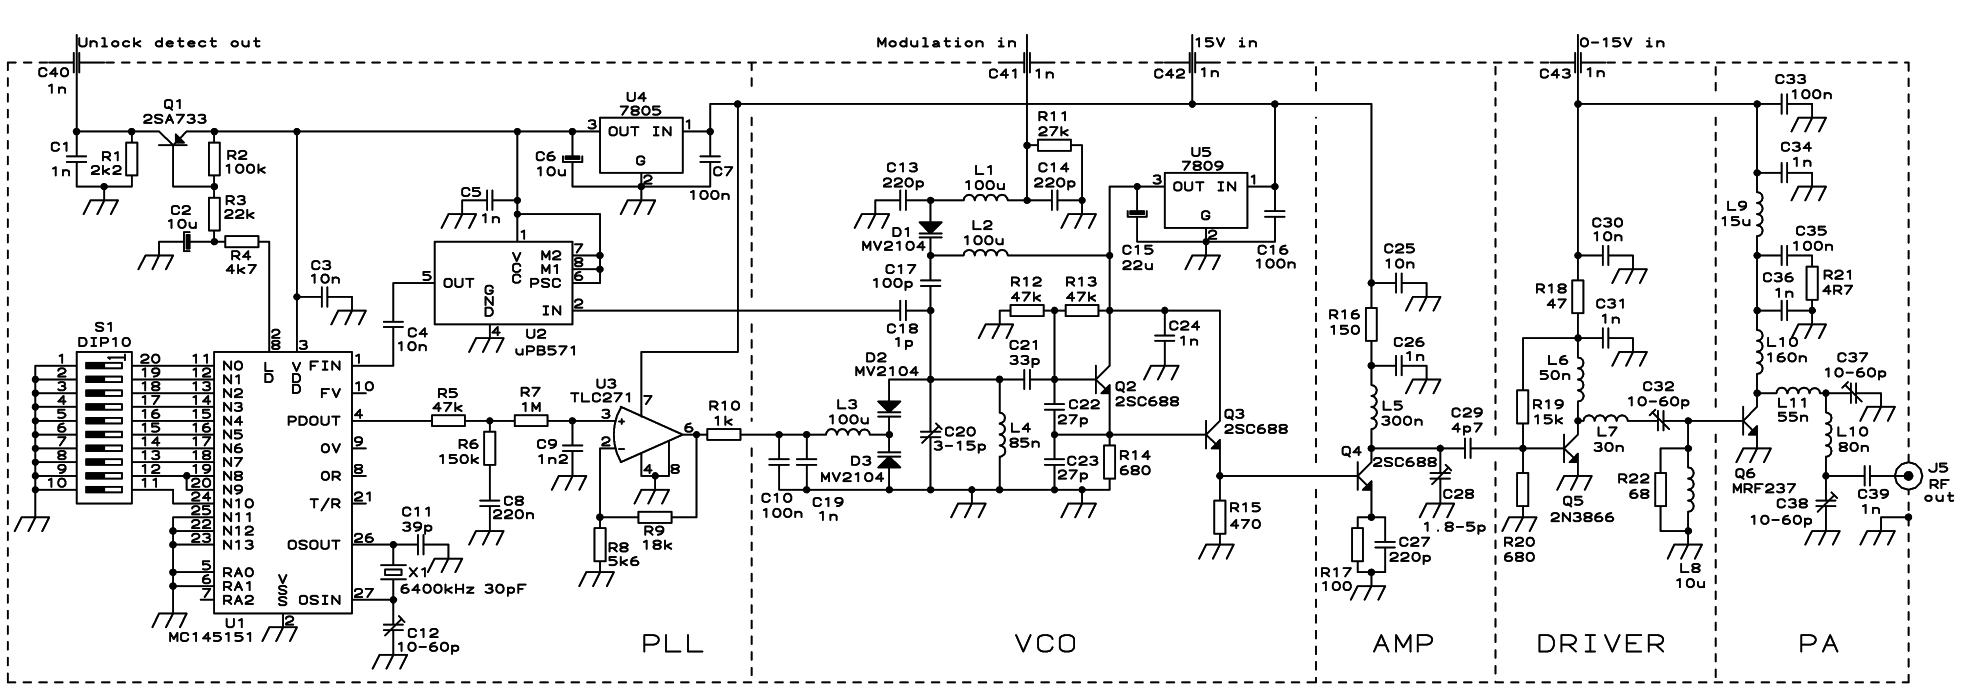 Homebrew RF Circuit Design Ideas likewise AM Transmitter in addition Thread238641 besides JFETrgn as well 129601 Looking Oem Tow Harness Diagram. on am fm tube radio schematic